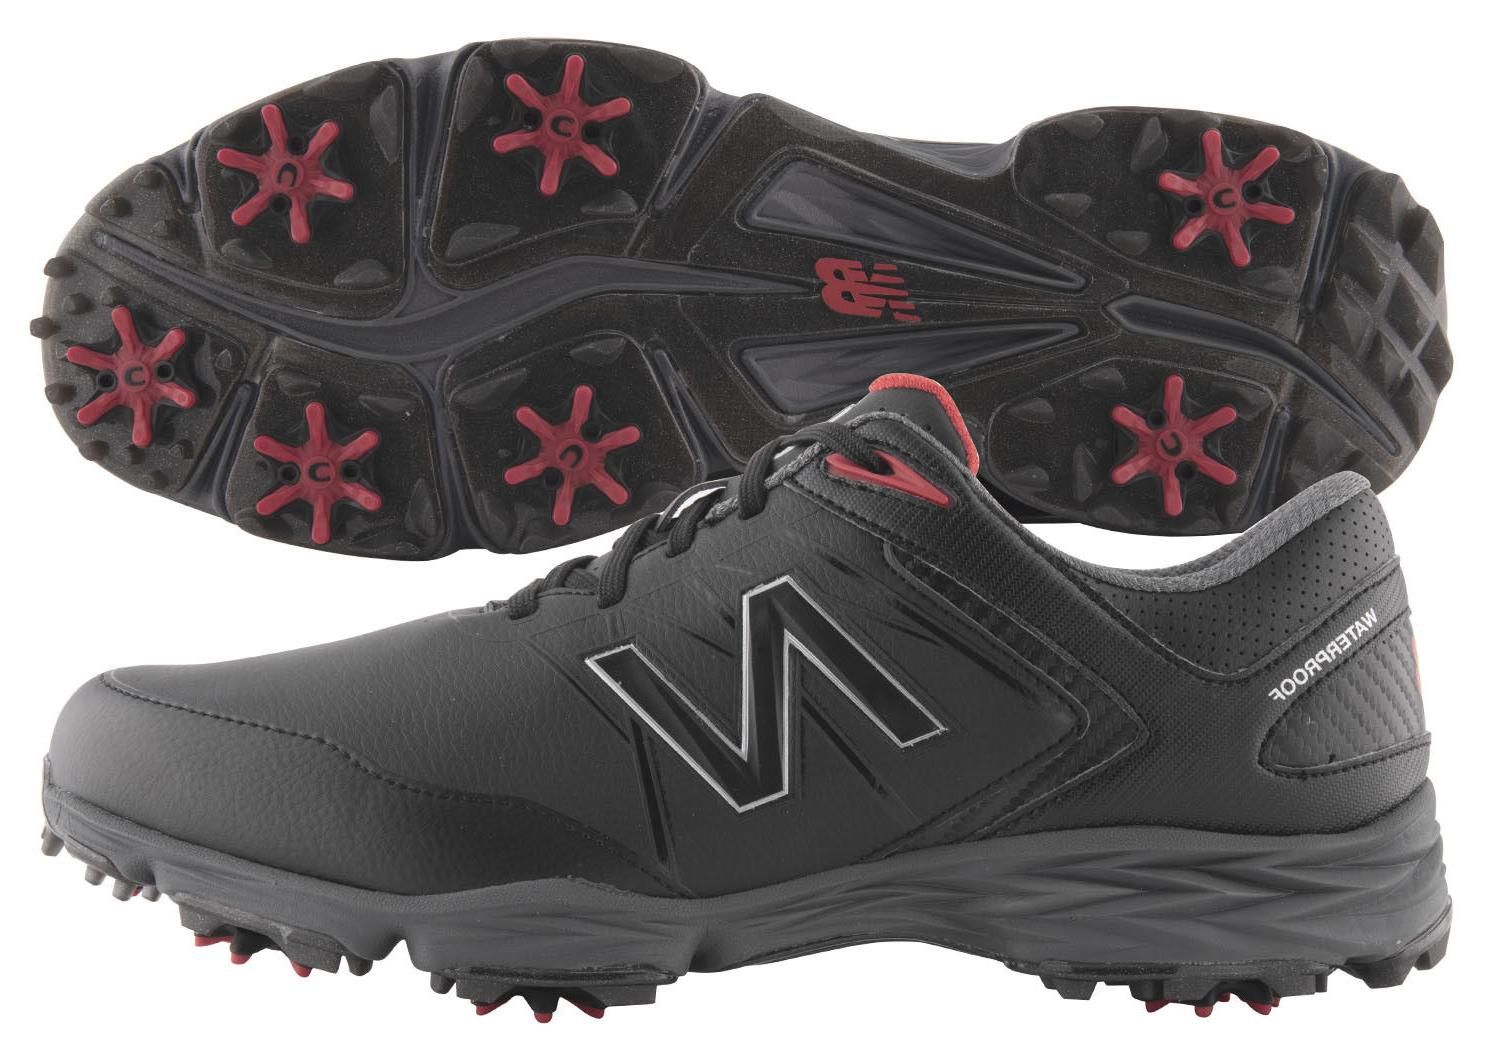 new men s striker spiked golf shoes